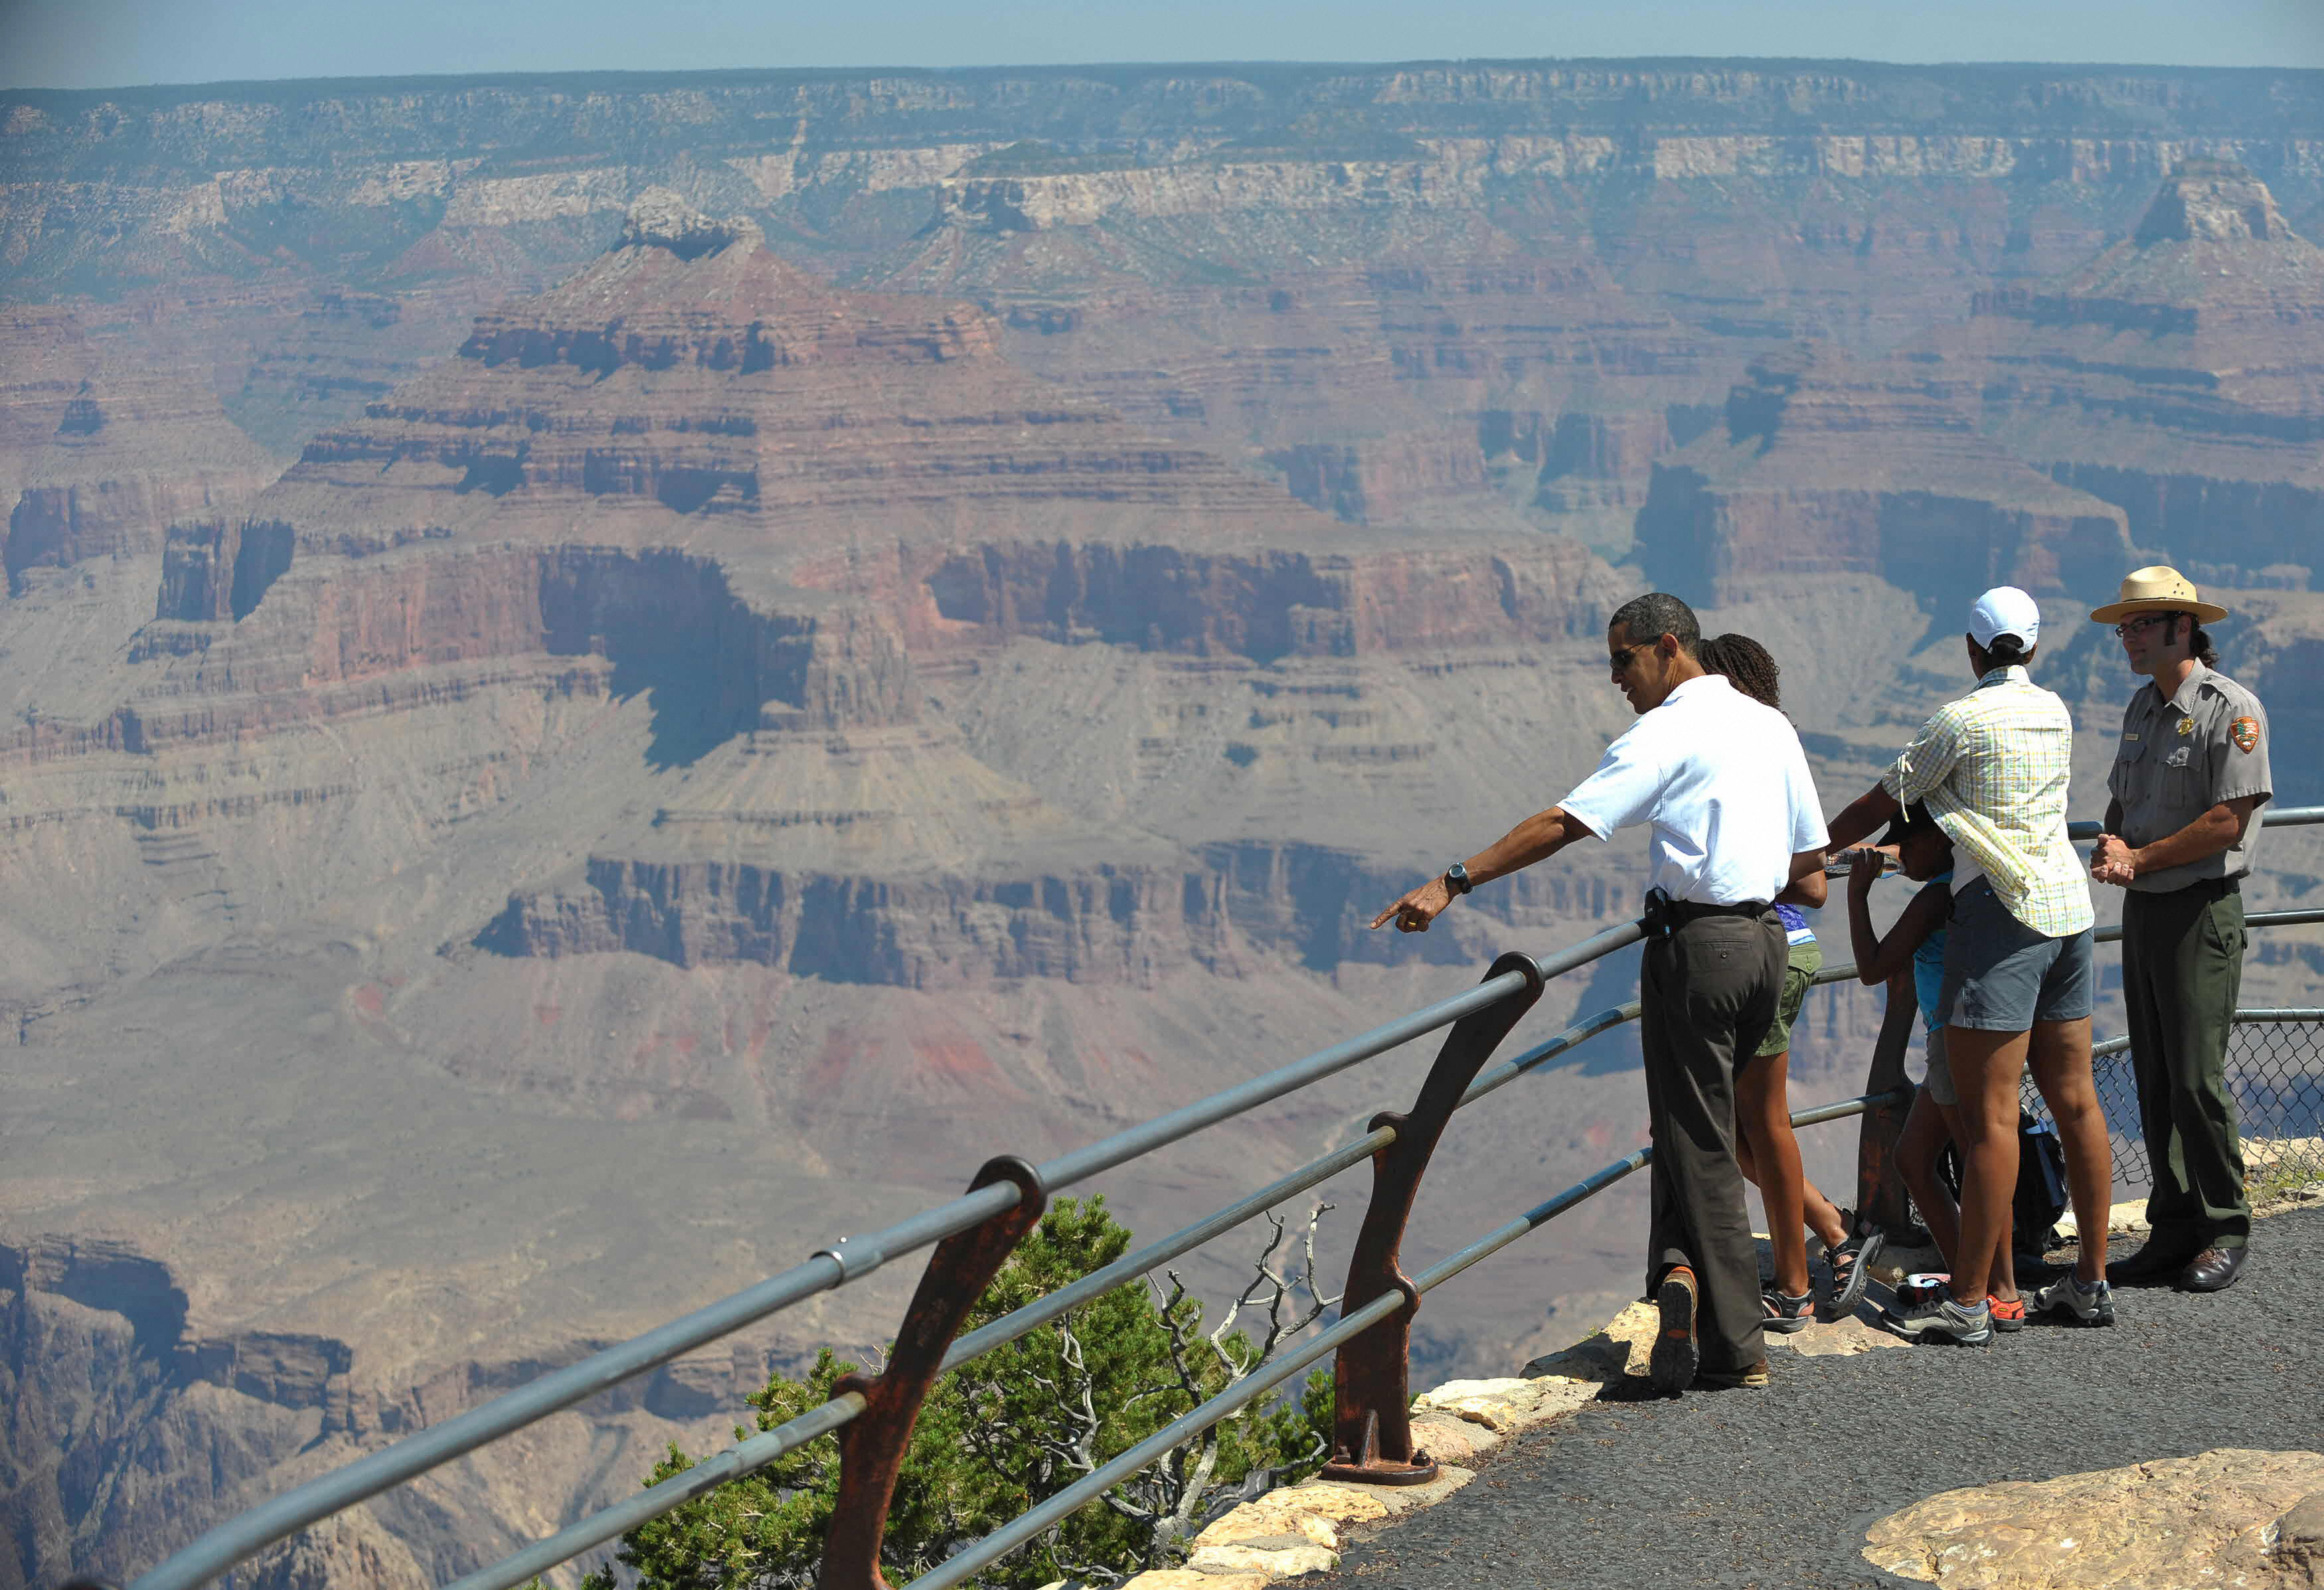 Google Maps Adds 9500 Panoramic Street Views of the Grand Canyon